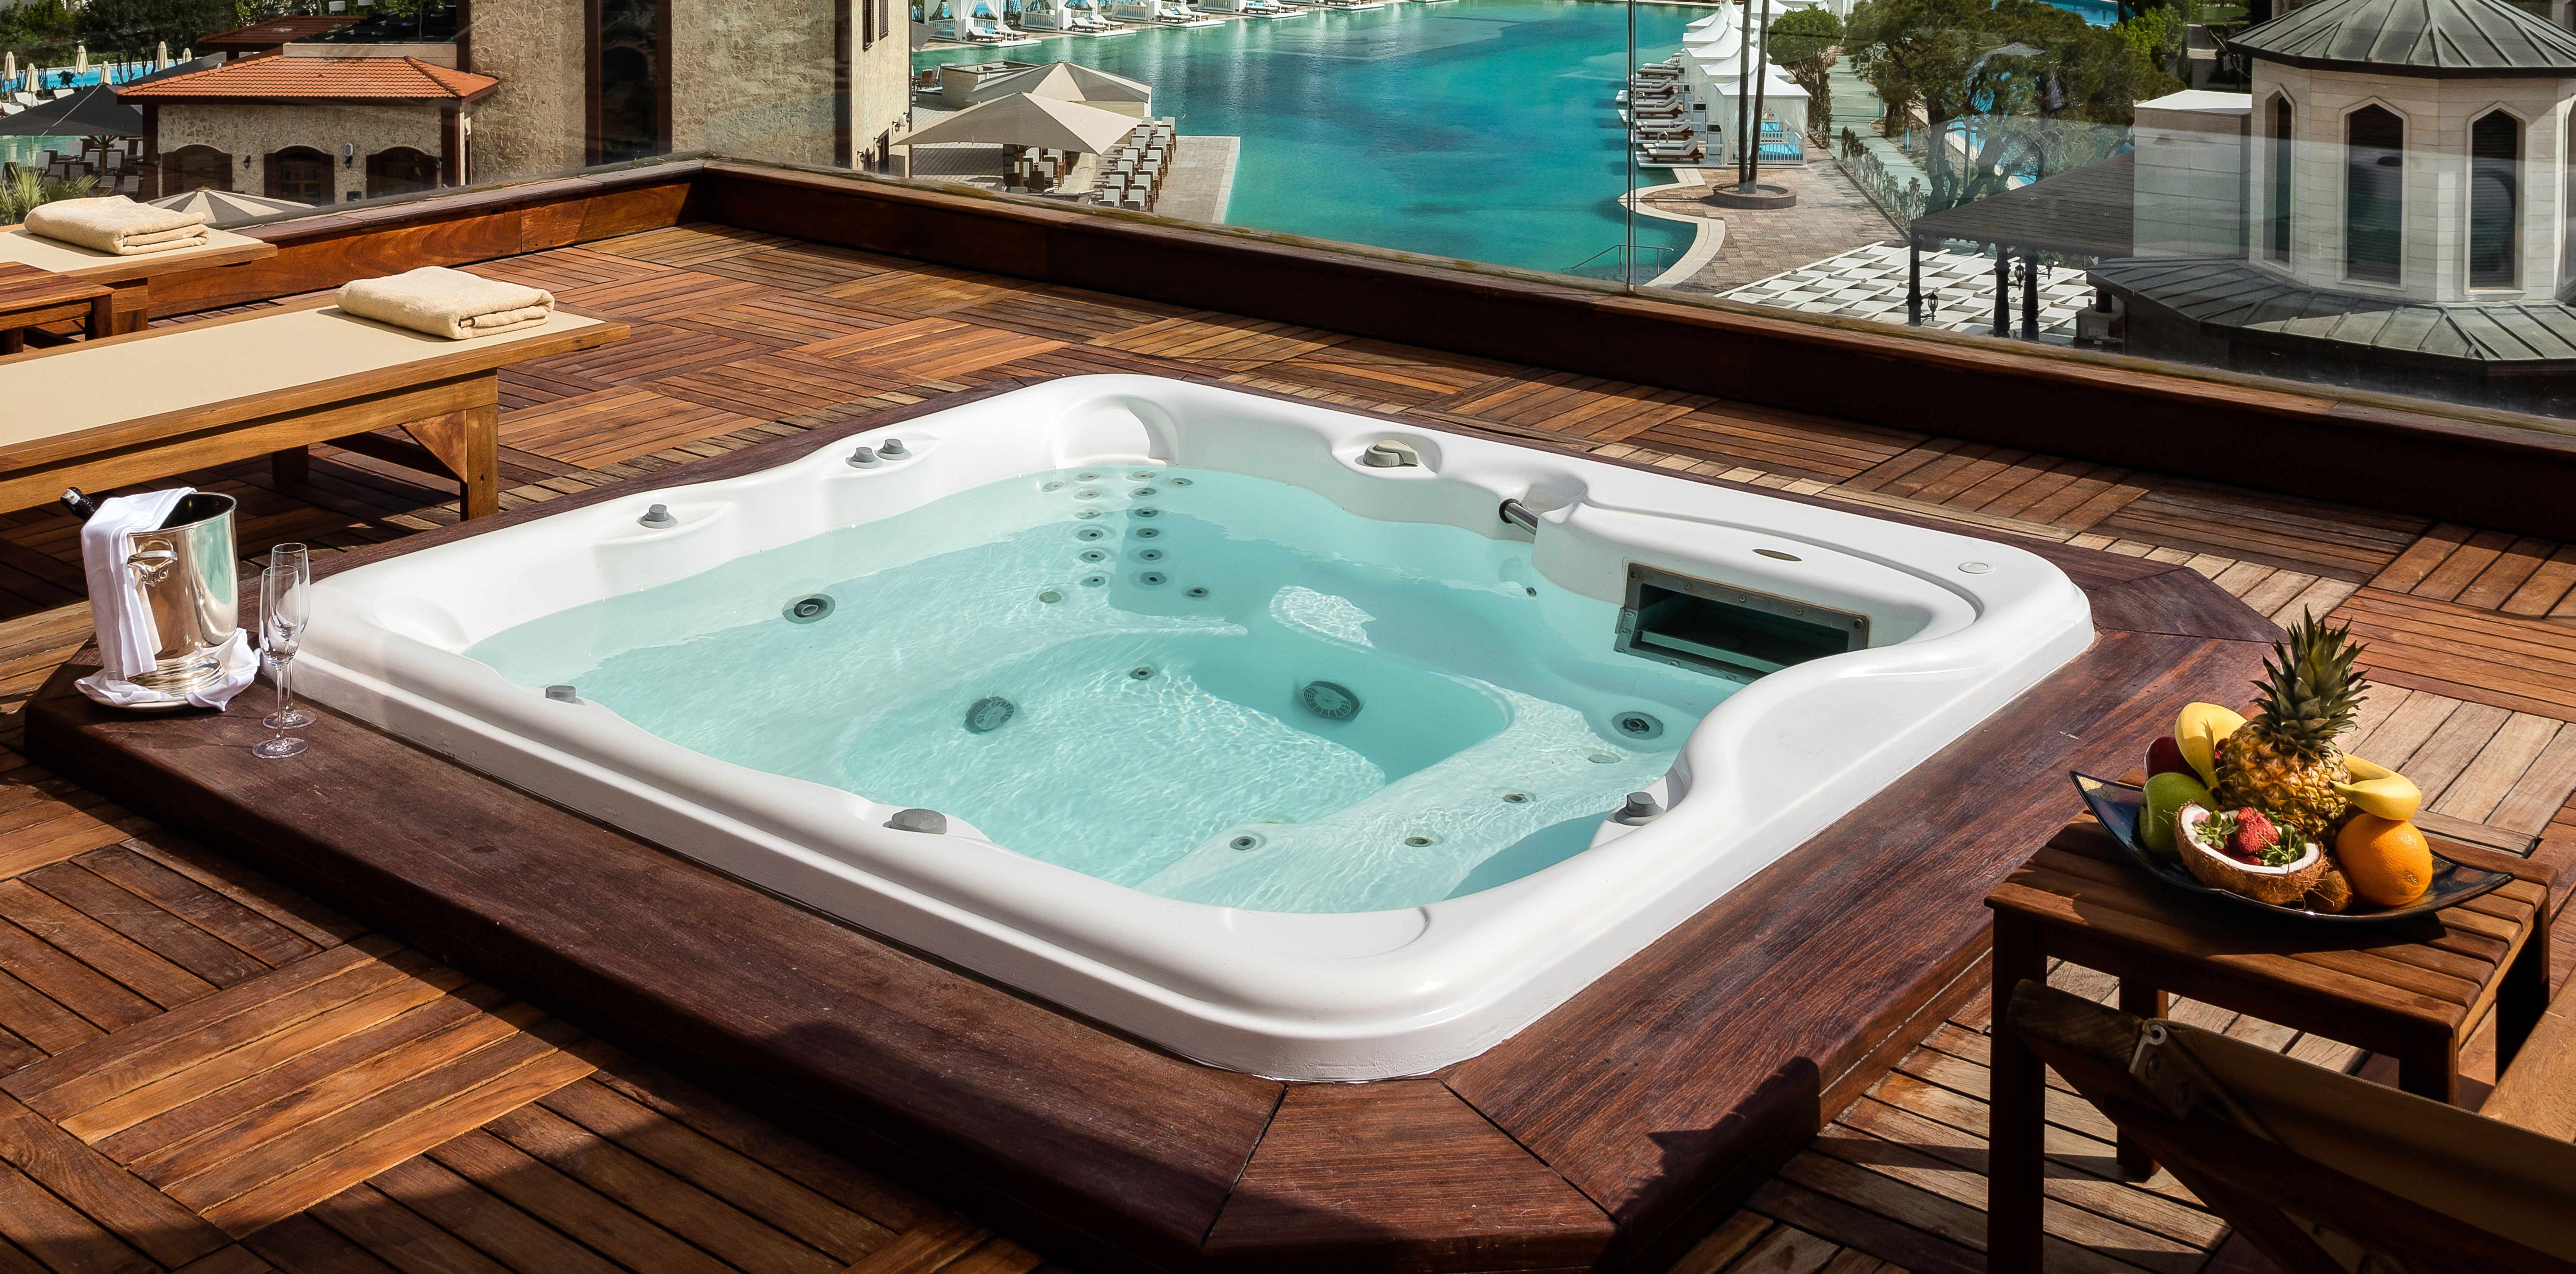 Jacuzzi,On,The,Terrace,Of,A,Luxury,Hotel,,Wine,Glasses